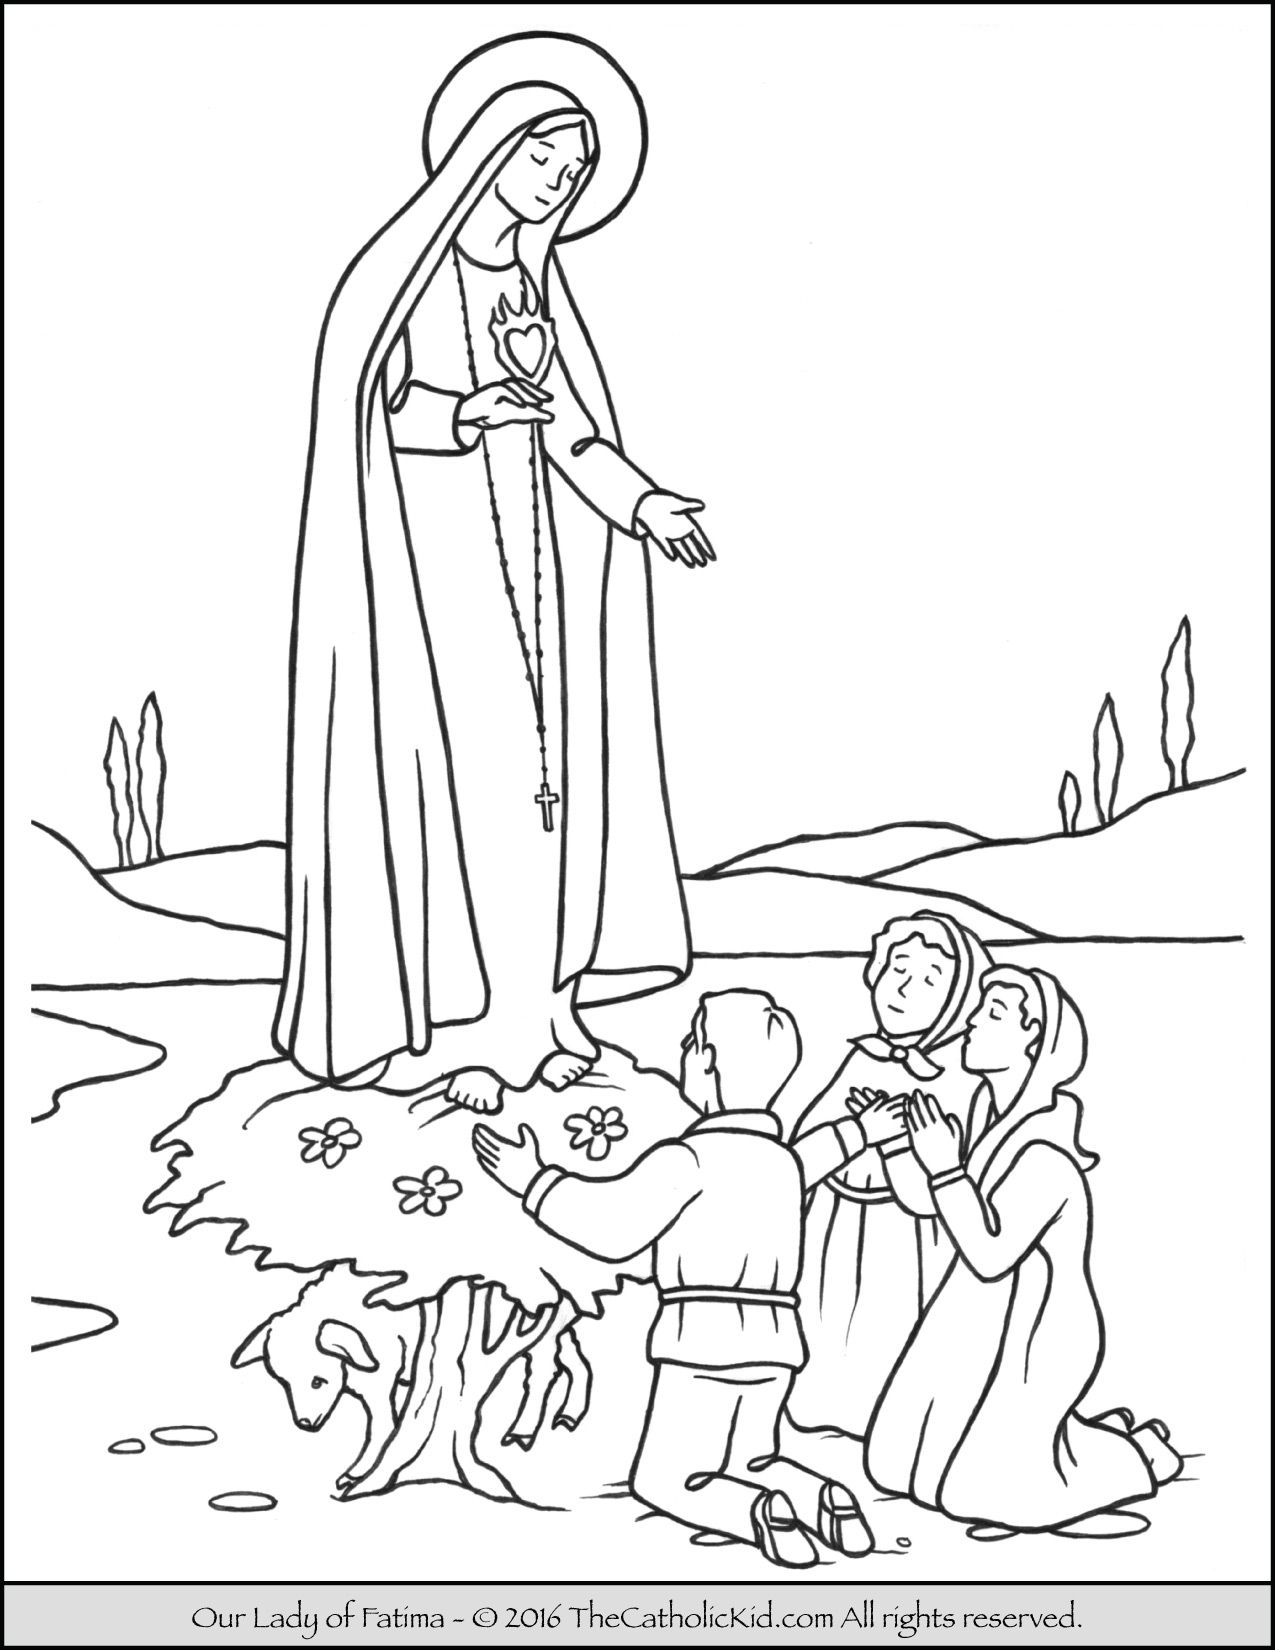 Our Lady Of Fatima Coloring Page Thecatholickid Com Catholic